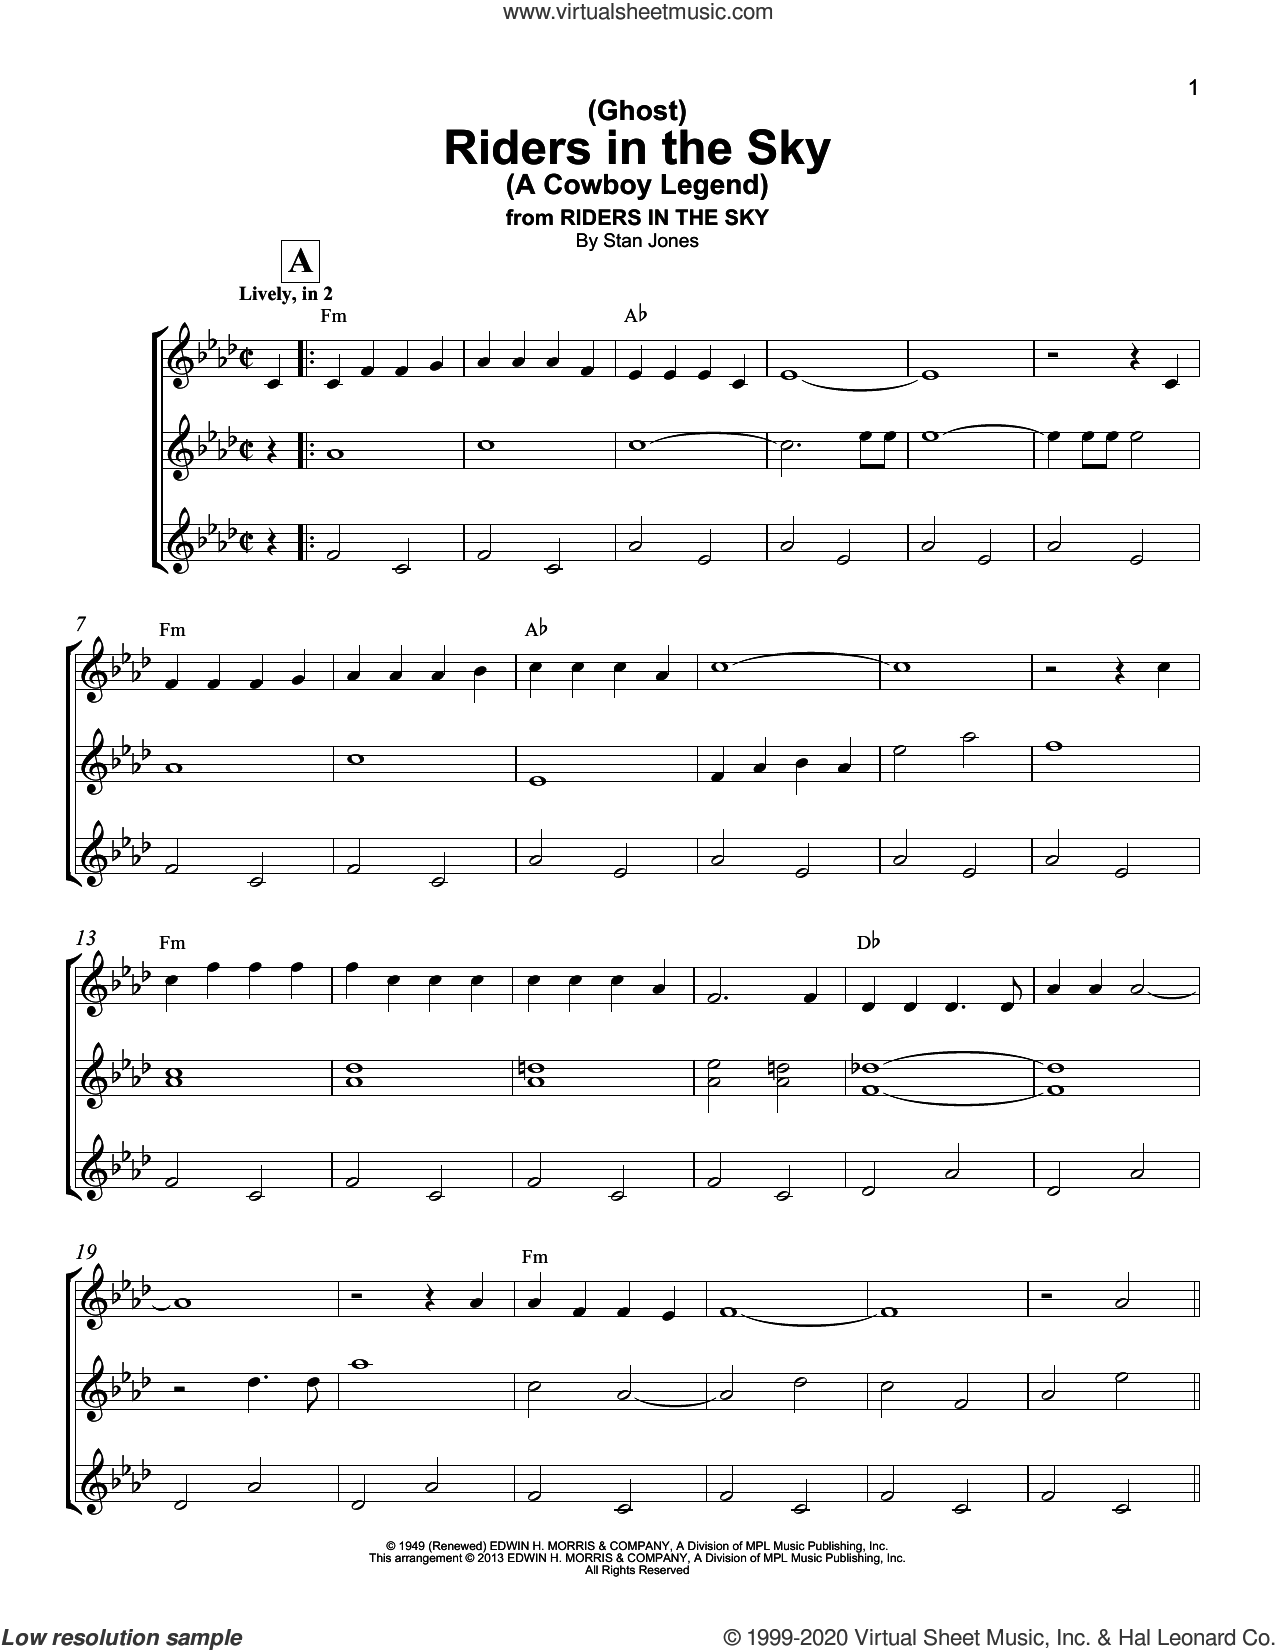 (Ghost) Riders In The Sky (A Cowboy Legend) sheet music for ukulele ensemble by Stan Jones and Johnny Cash, intermediate skill level